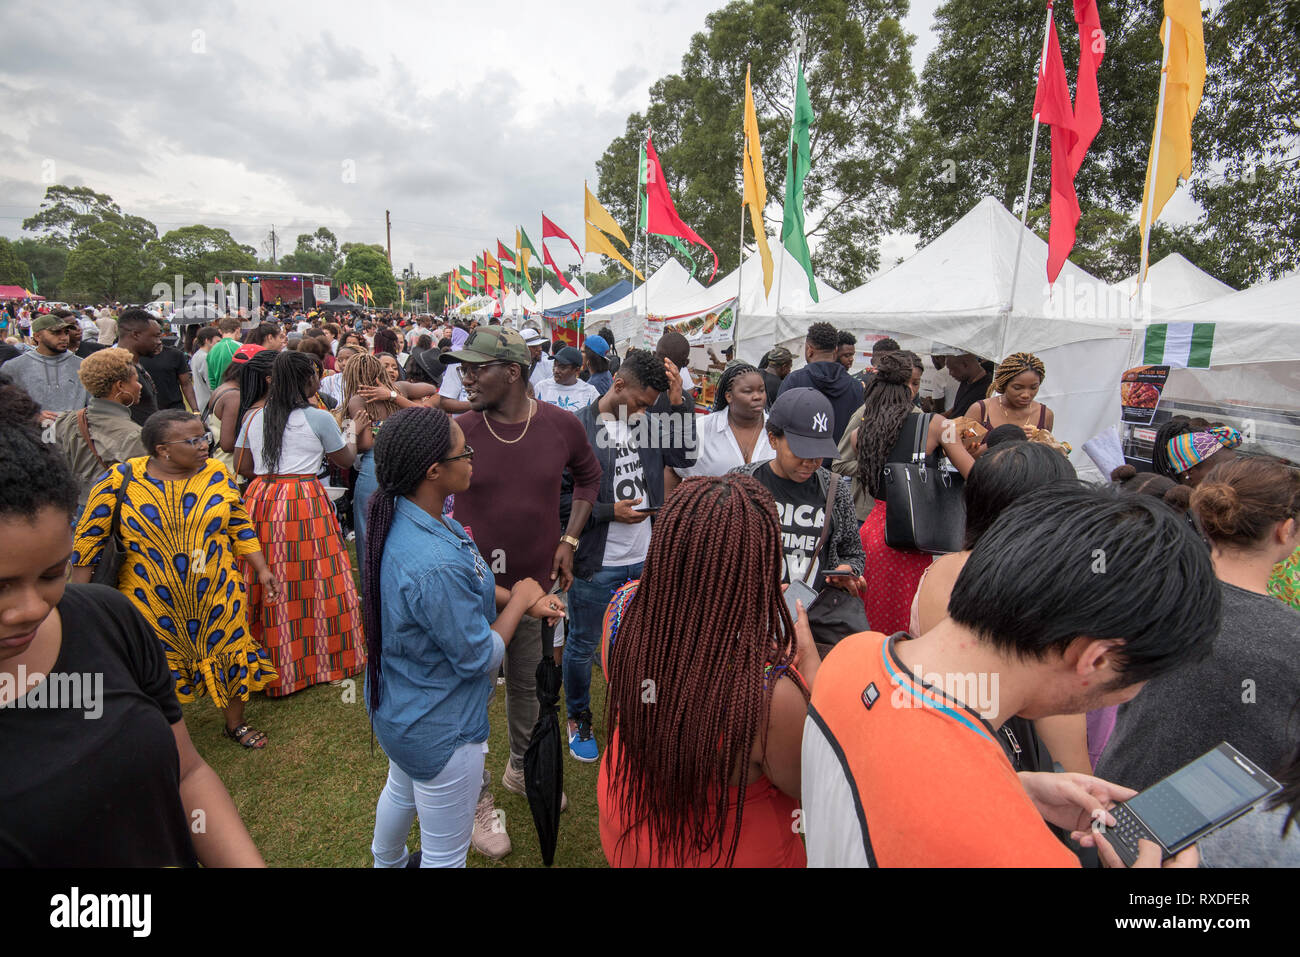 Sydney, Australia 9th, March 2019, Multicultural Australia was on show today at the Africultures Festival held in Wyatt Park, Lidcombe, Sydney. Despite the occasional shower of rain event goers were treated to music and entertainment, colourful market stalls and food from many of the represented nations. Contributor: Stephen Dwyer / Alamy Stock Photo Credit: Stephen Dwyer/Alamy Live News Stock Photo